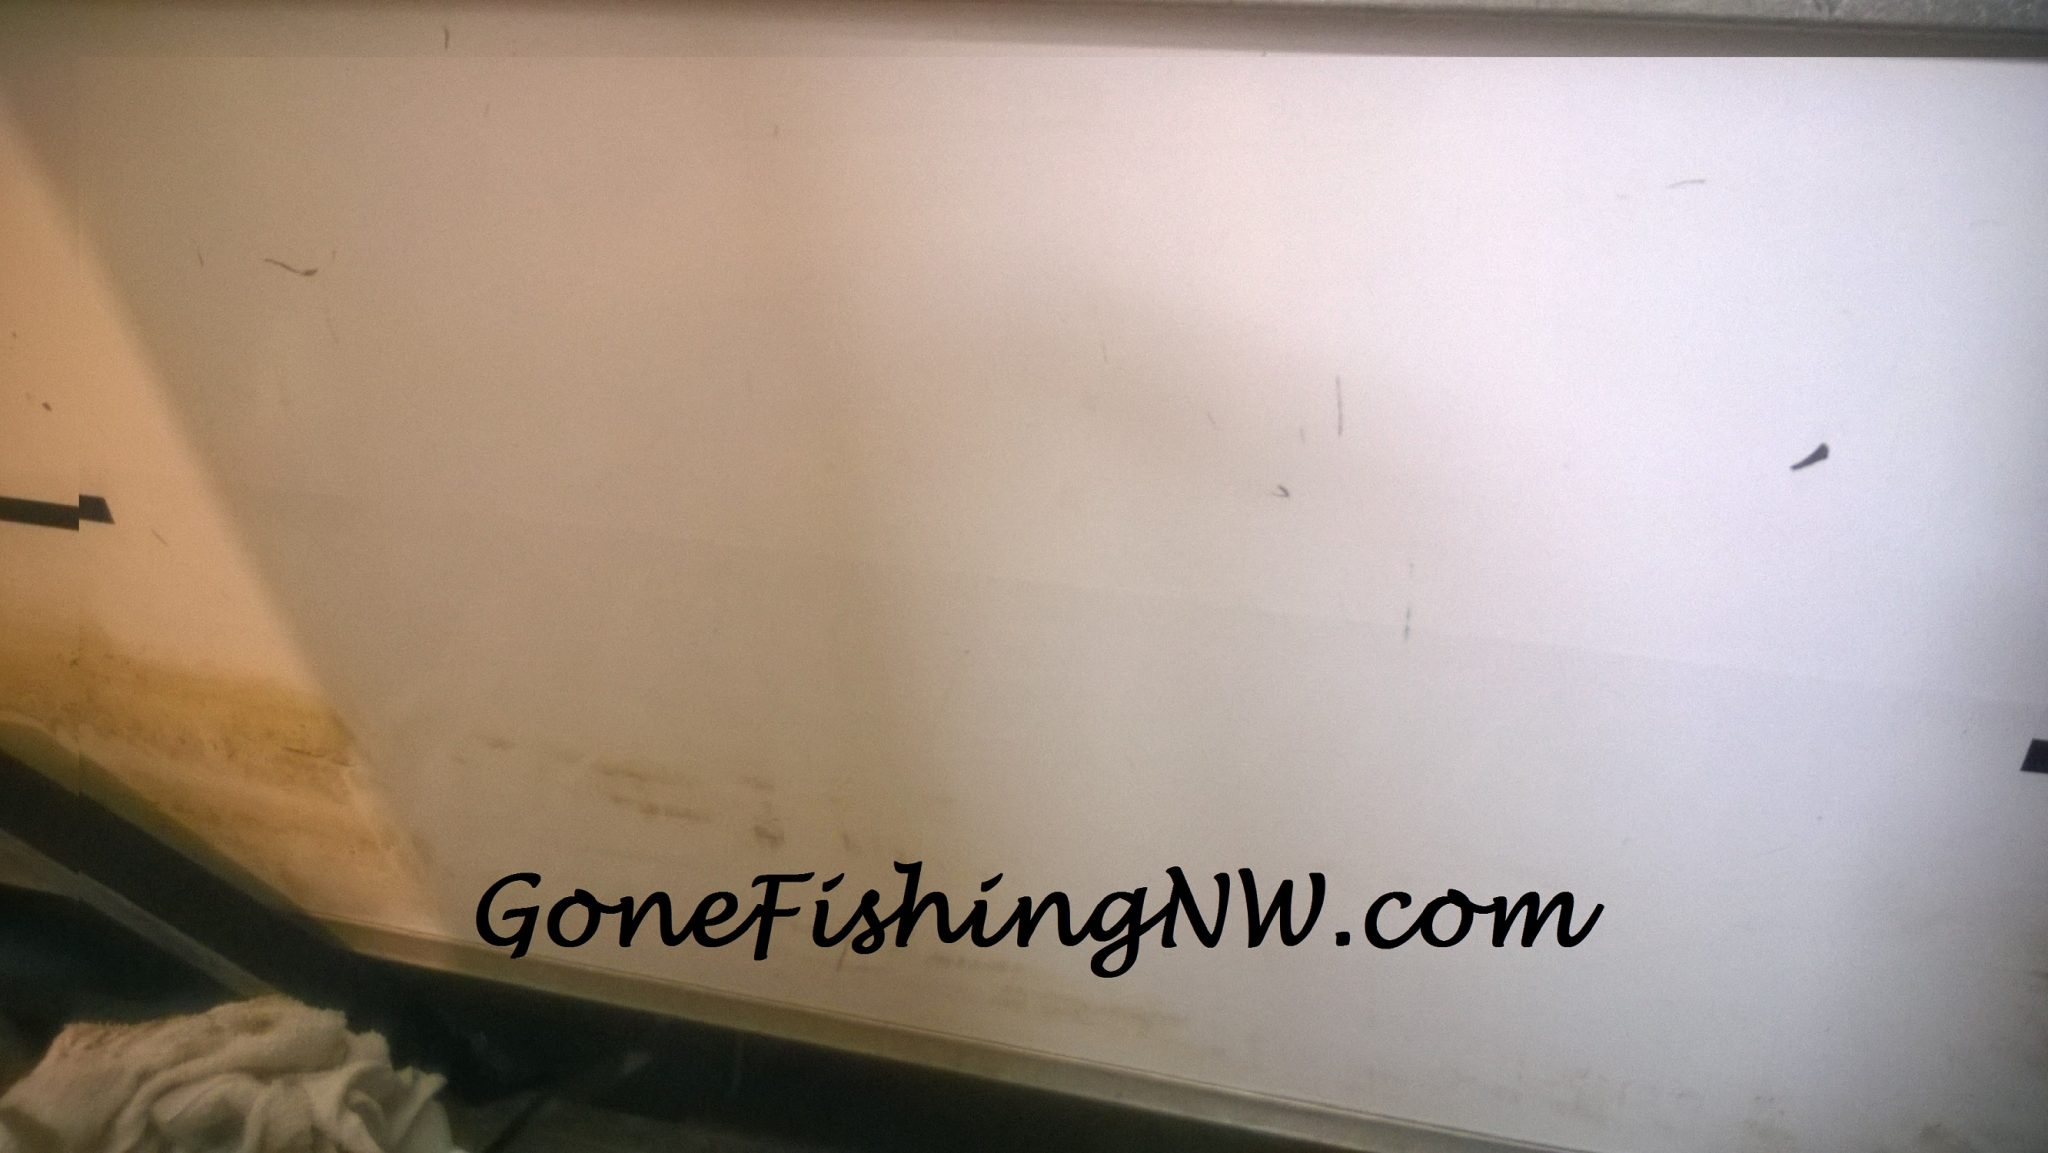 Removing Vinyl Boat Stickers Gone Fishing NW - Custom vinyl decals for boats   removal options